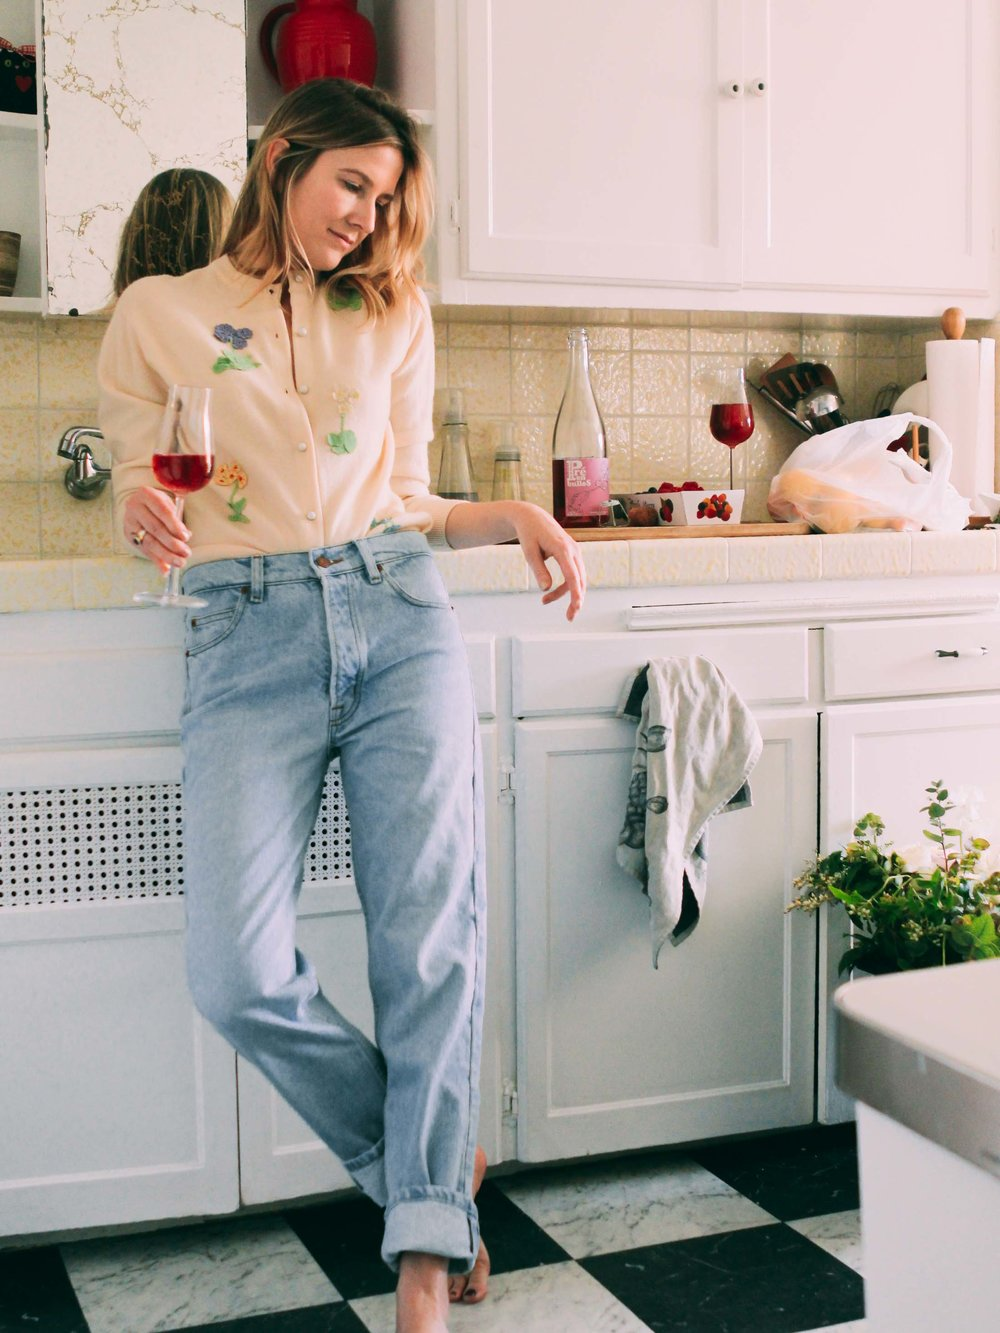 Katherine wearing a  vintage Floral Applique Cashmere sweater  in her Silver Lake home.